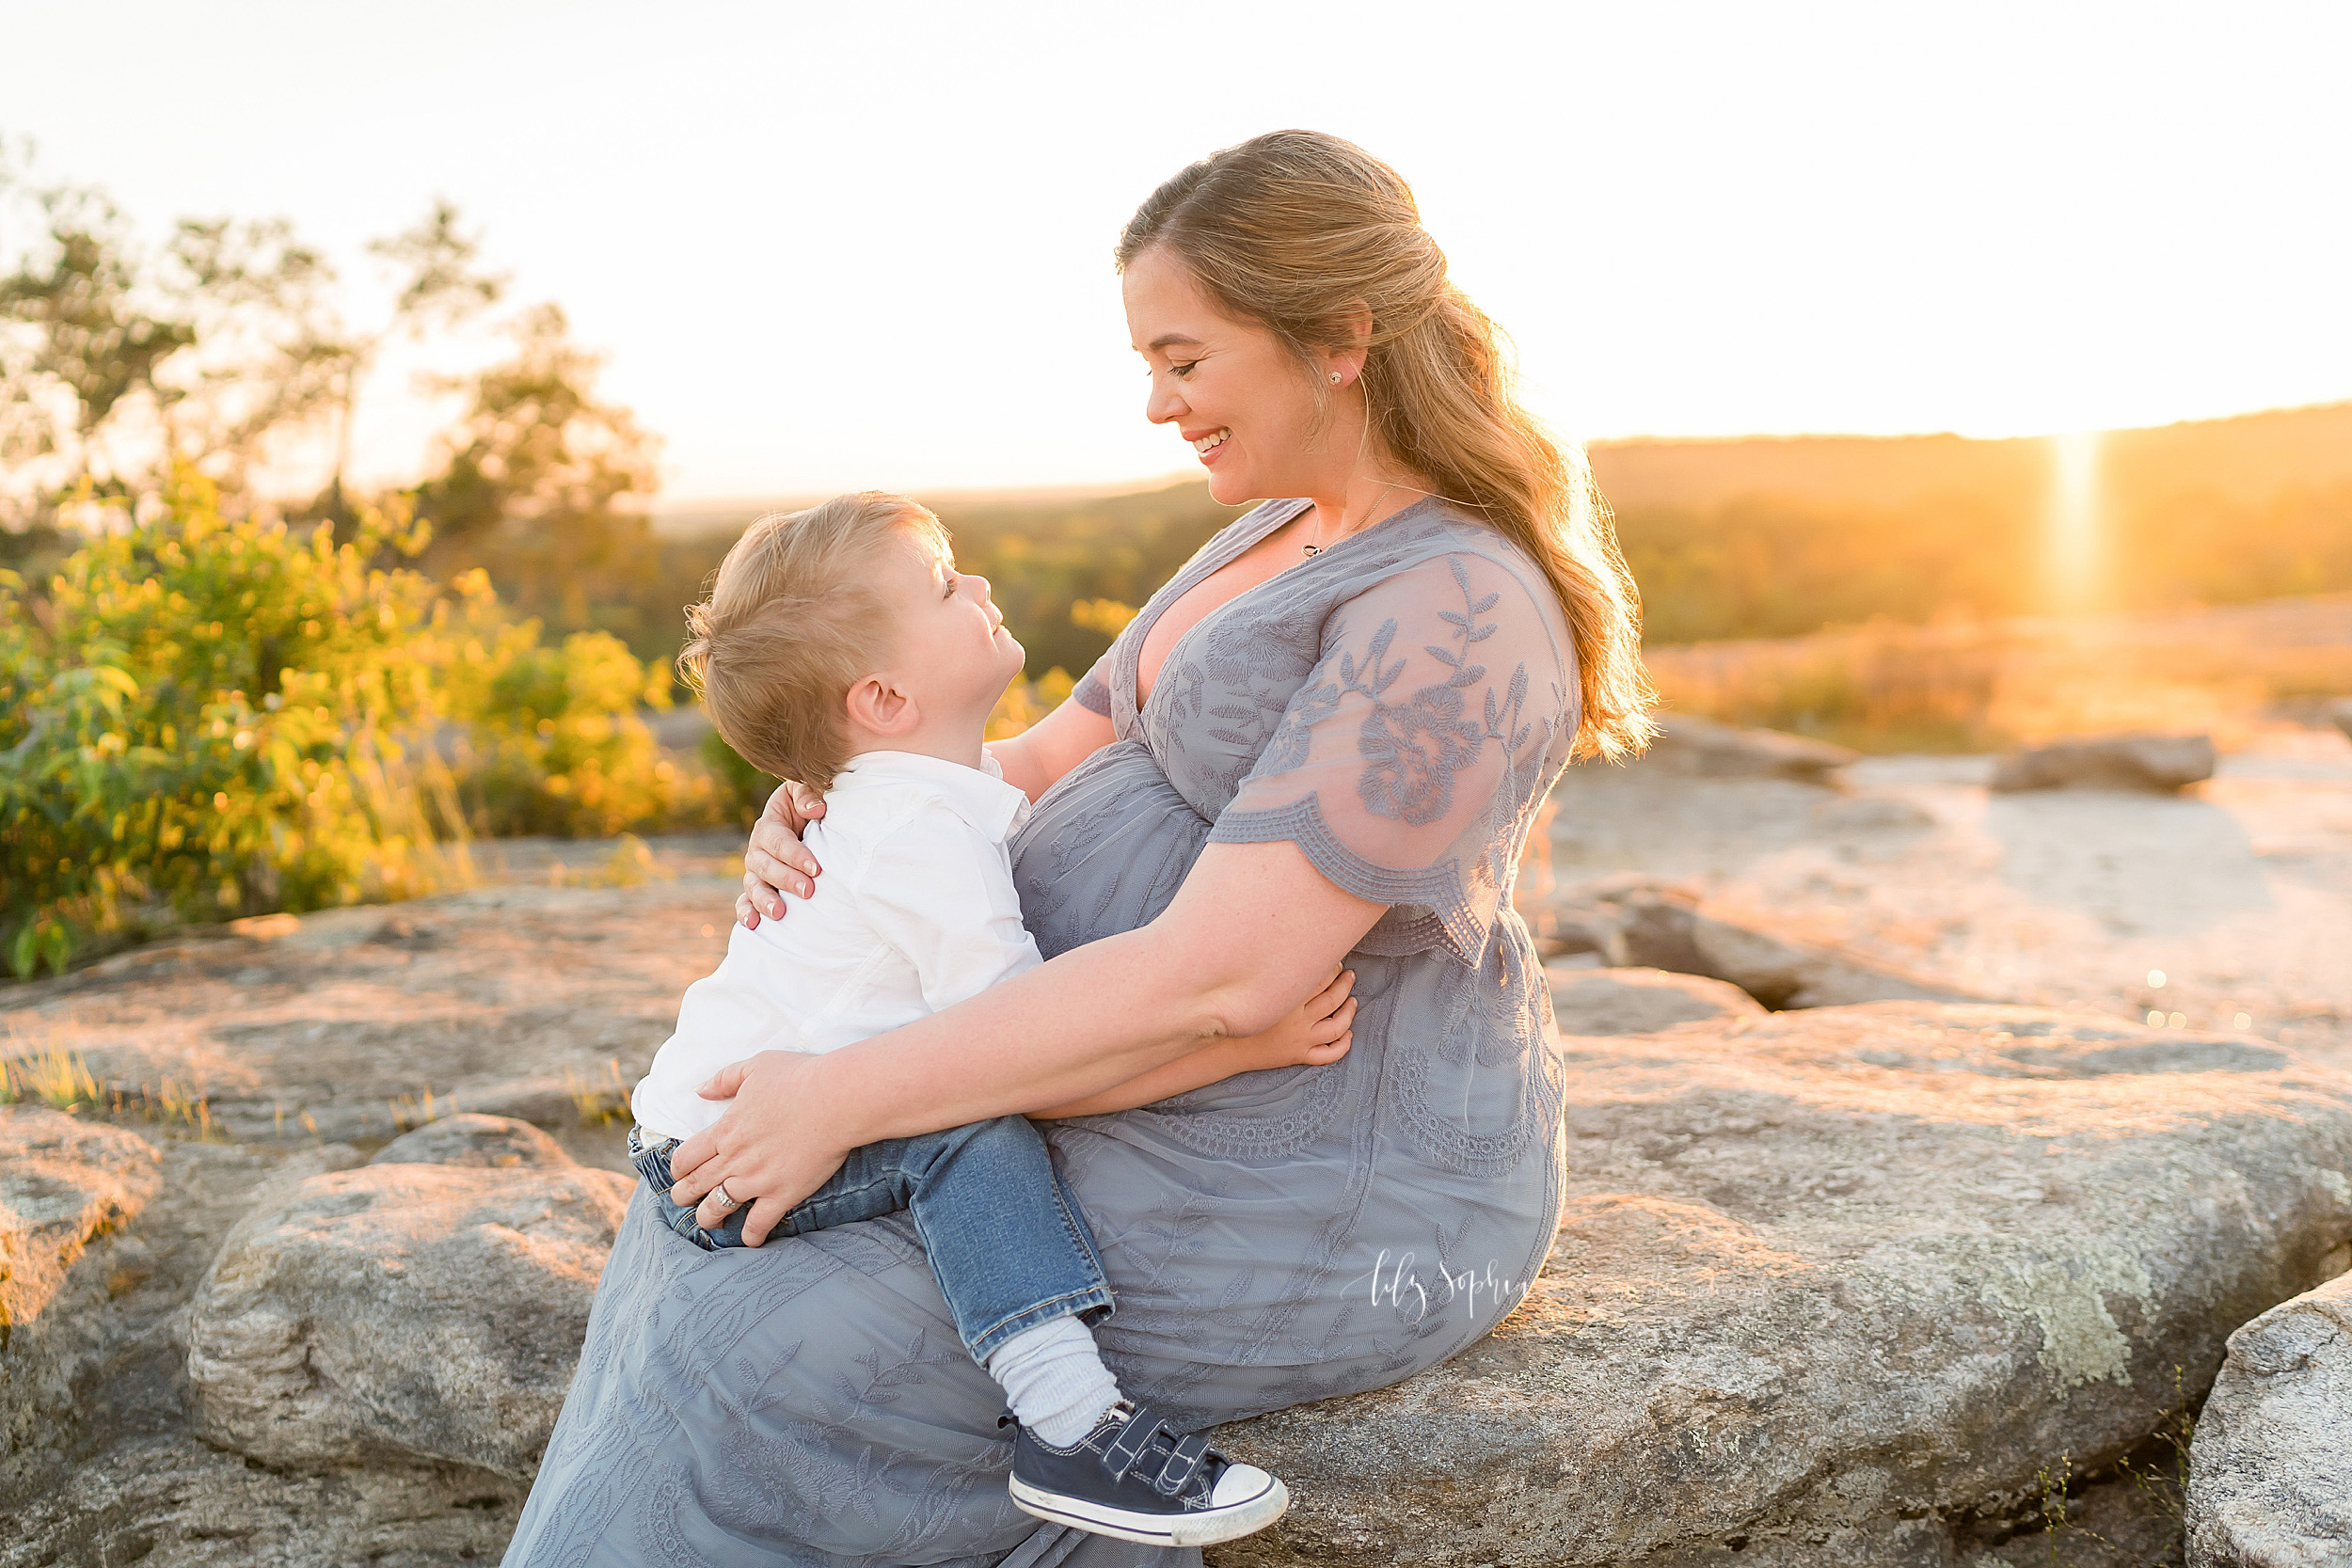 atlanta-brookhaven-decatur-candler-park-sandy-springs-buckhead-virginia-highlands-west-end-decatur-lily-sophia-photography-family-big-brother-expecting-newborn-baby-girl-couples-family-maternity-outdoor-session_1599.jpg